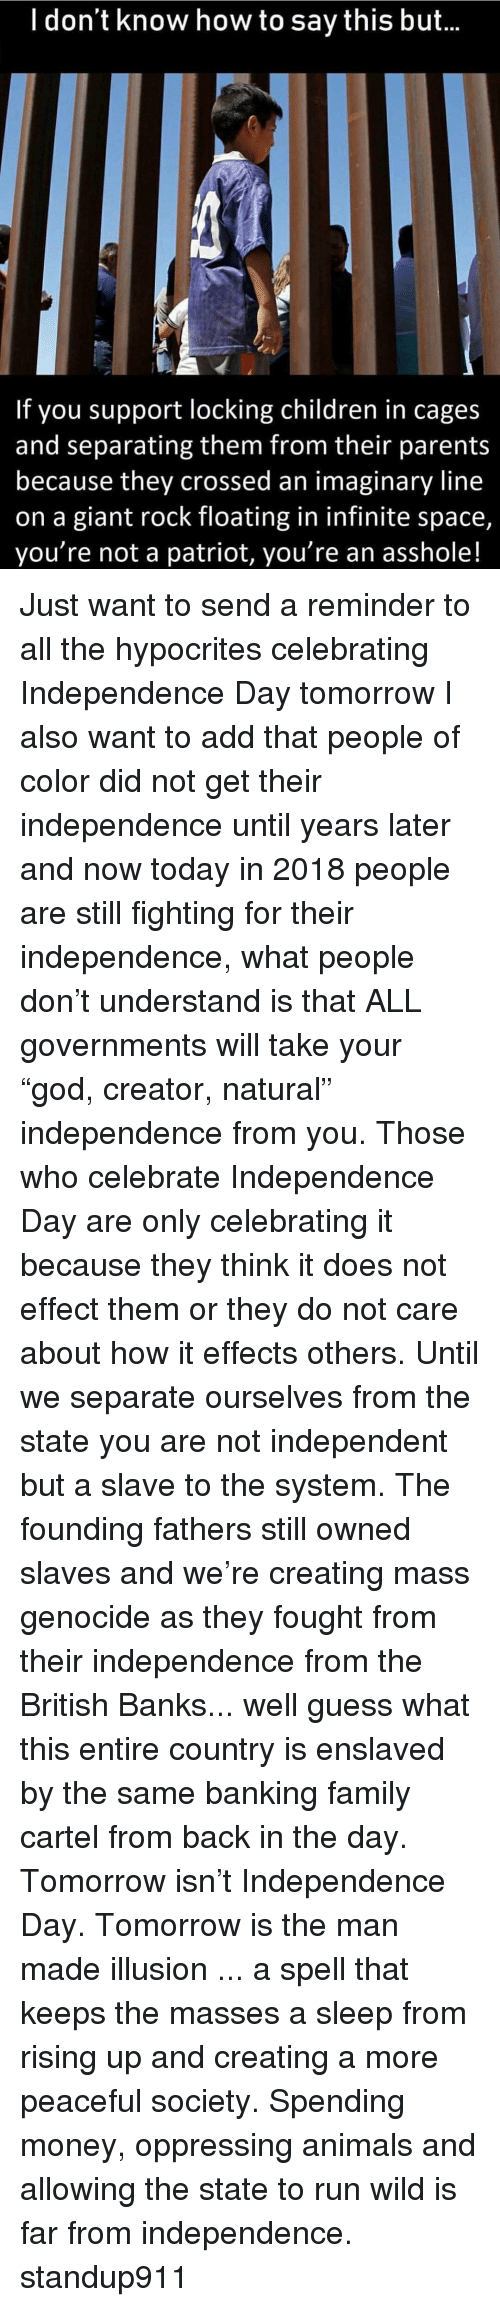 """Independence Day: l don't know how to say this but...  If you support locking children in cages  and separating them from their parents  because they crossed an imaginary line  on a giant rock floating in infinite space,  you're not a patriot, you're an asshole! Just want to send a reminder to all the hypocrites celebrating Independence Day tomorrow I also want to add that people of color did not get their independence until years later and now today in 2018 people are still fighting for their independence, what people don't understand is that ALL governments will take your """"god, creator, natural"""" independence from you. Those who celebrate Independence Day are only celebrating it because they think it does not effect them or they do not care about how it effects others. Until we separate ourselves from the state you are not independent but a slave to the system. The founding fathers still owned slaves and we're creating mass genocide as they fought from their independence from the British Banks... well guess what this entire country is enslaved by the same banking family cartel from back in the day. Tomorrow isn't Independence Day. Tomorrow is the man made illusion ... a spell that keeps the masses a sleep from rising up and creating a more peaceful society. Spending money, oppressing animals and allowing the state to run wild is far from independence. standup911"""